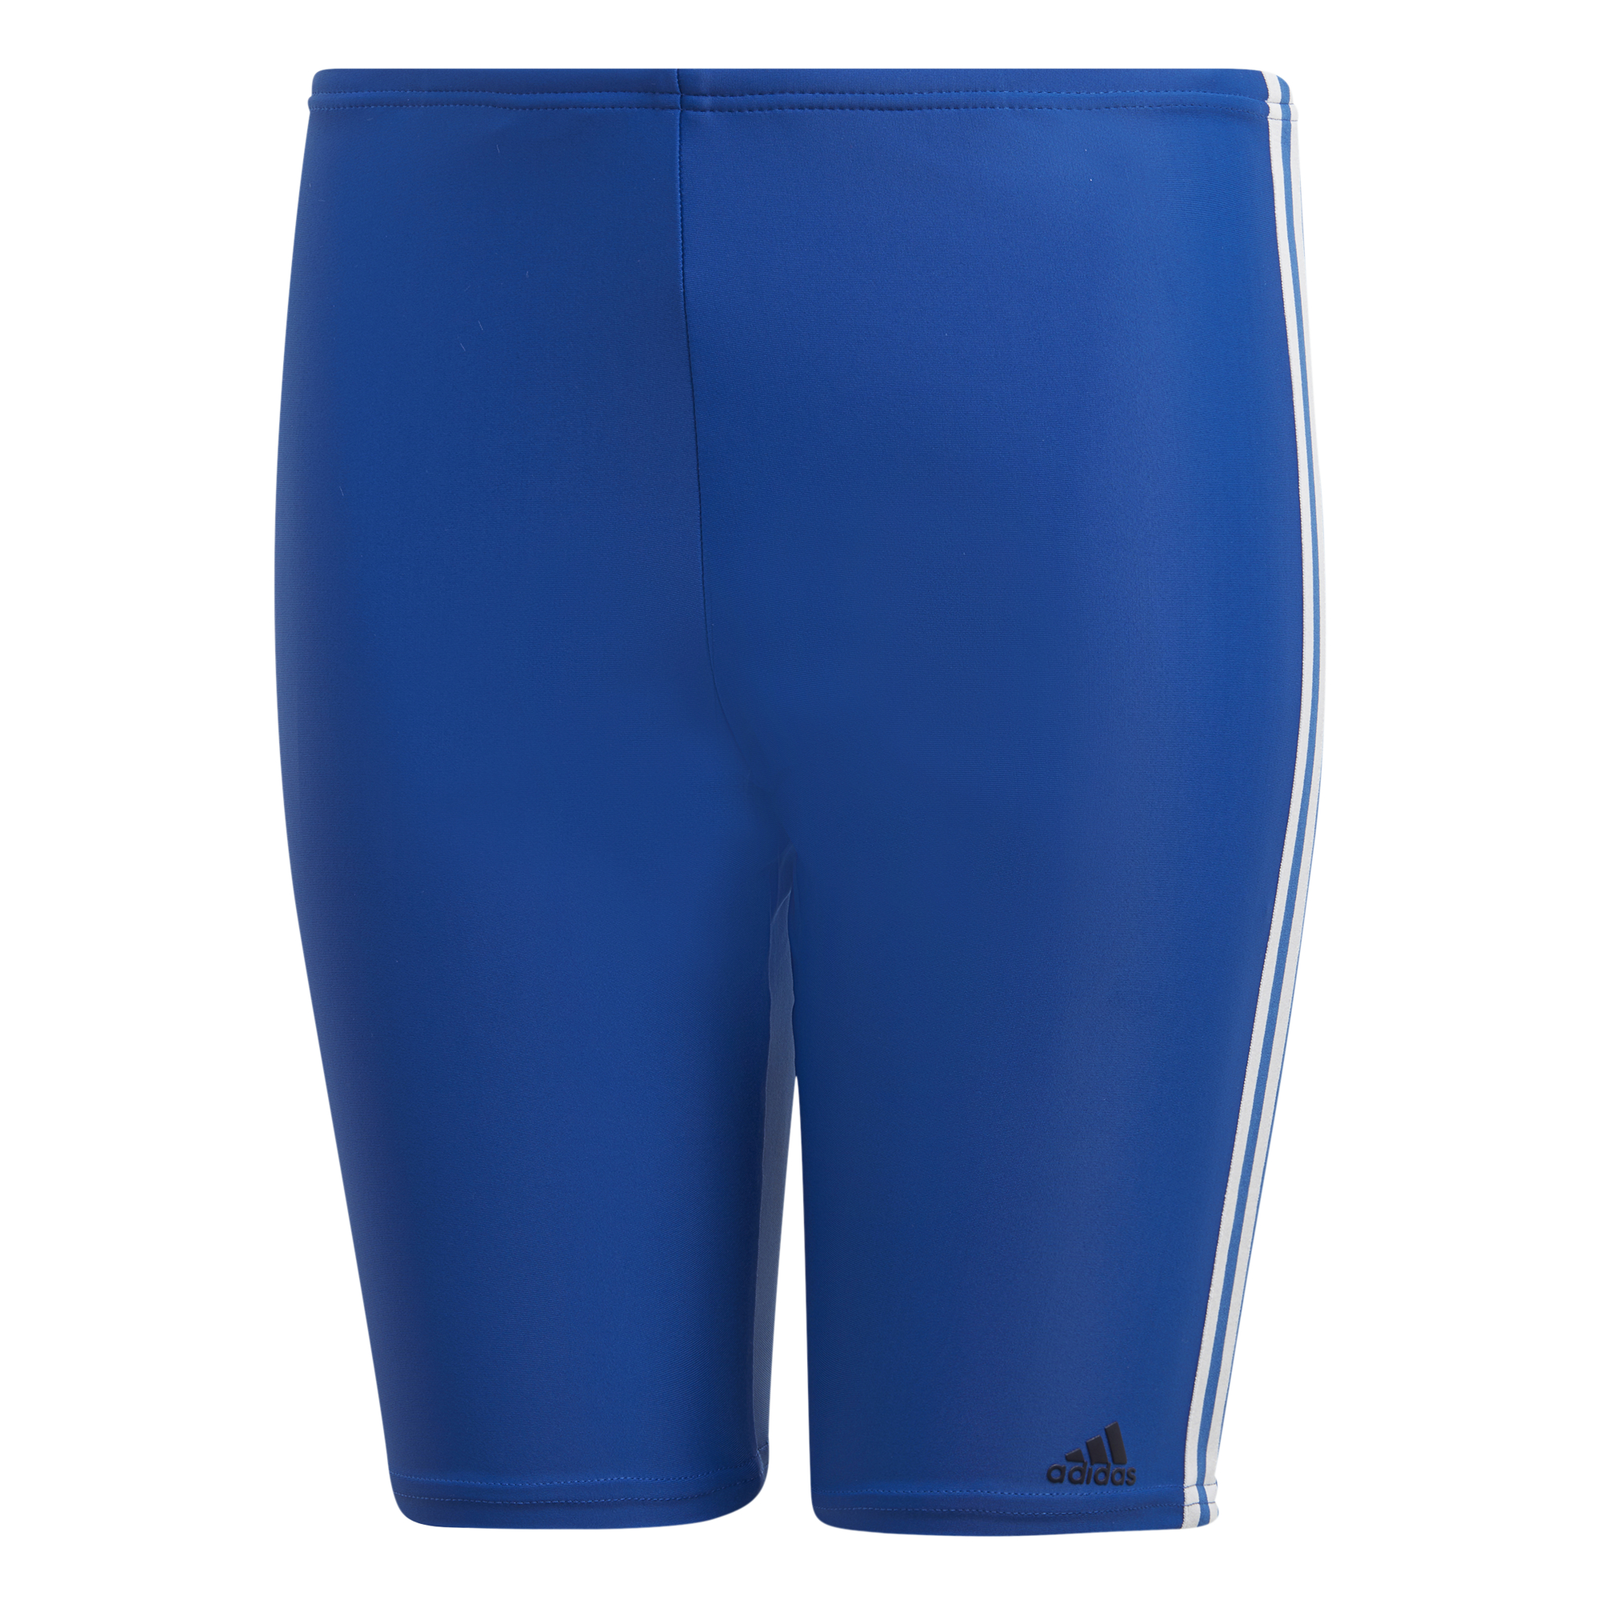 adidas Performance Kinder Badehose fitness 3 Stripes swim jammer boys blau